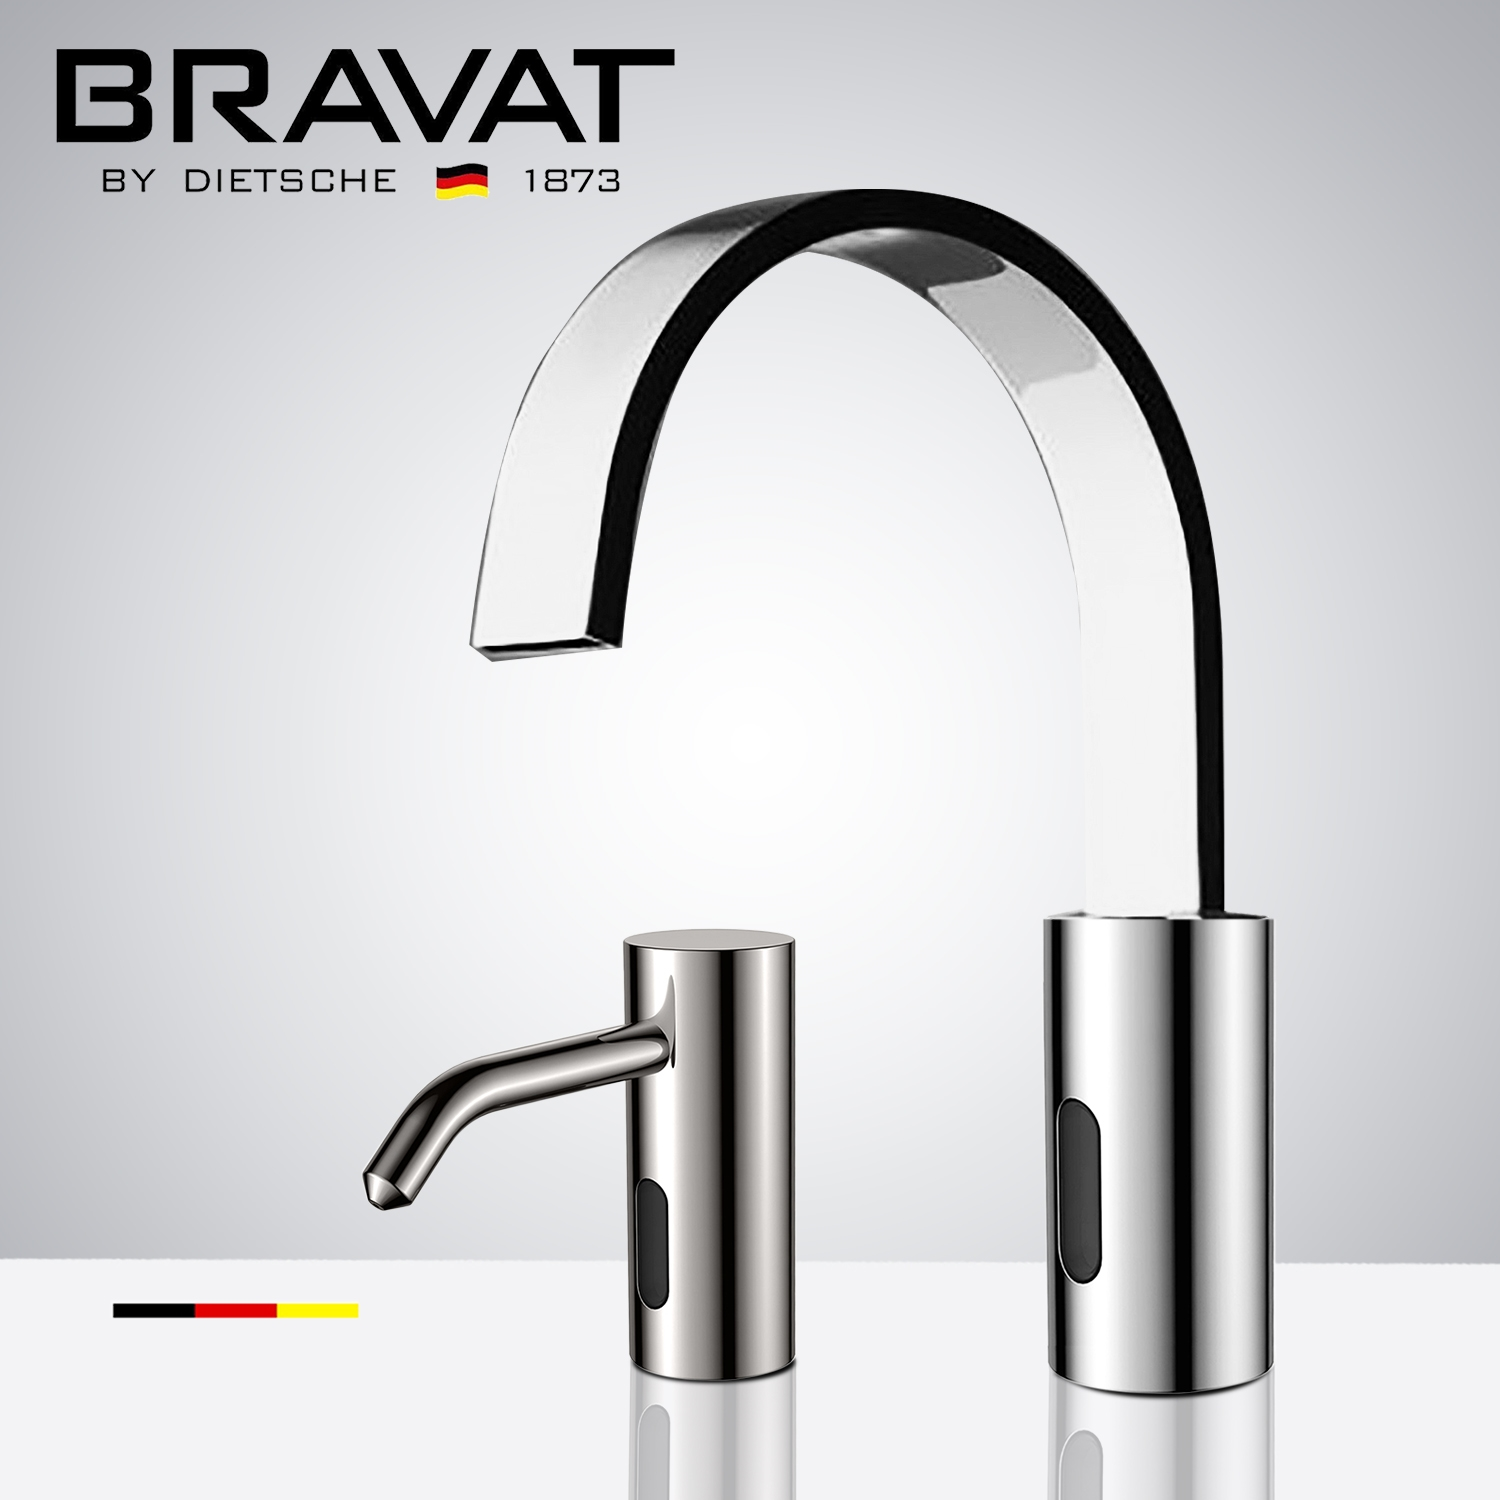 Fontana Bravat Freestanding Chrome Finish Automatic Commercial Sensor Faucet & Automatic Soap Dispenser